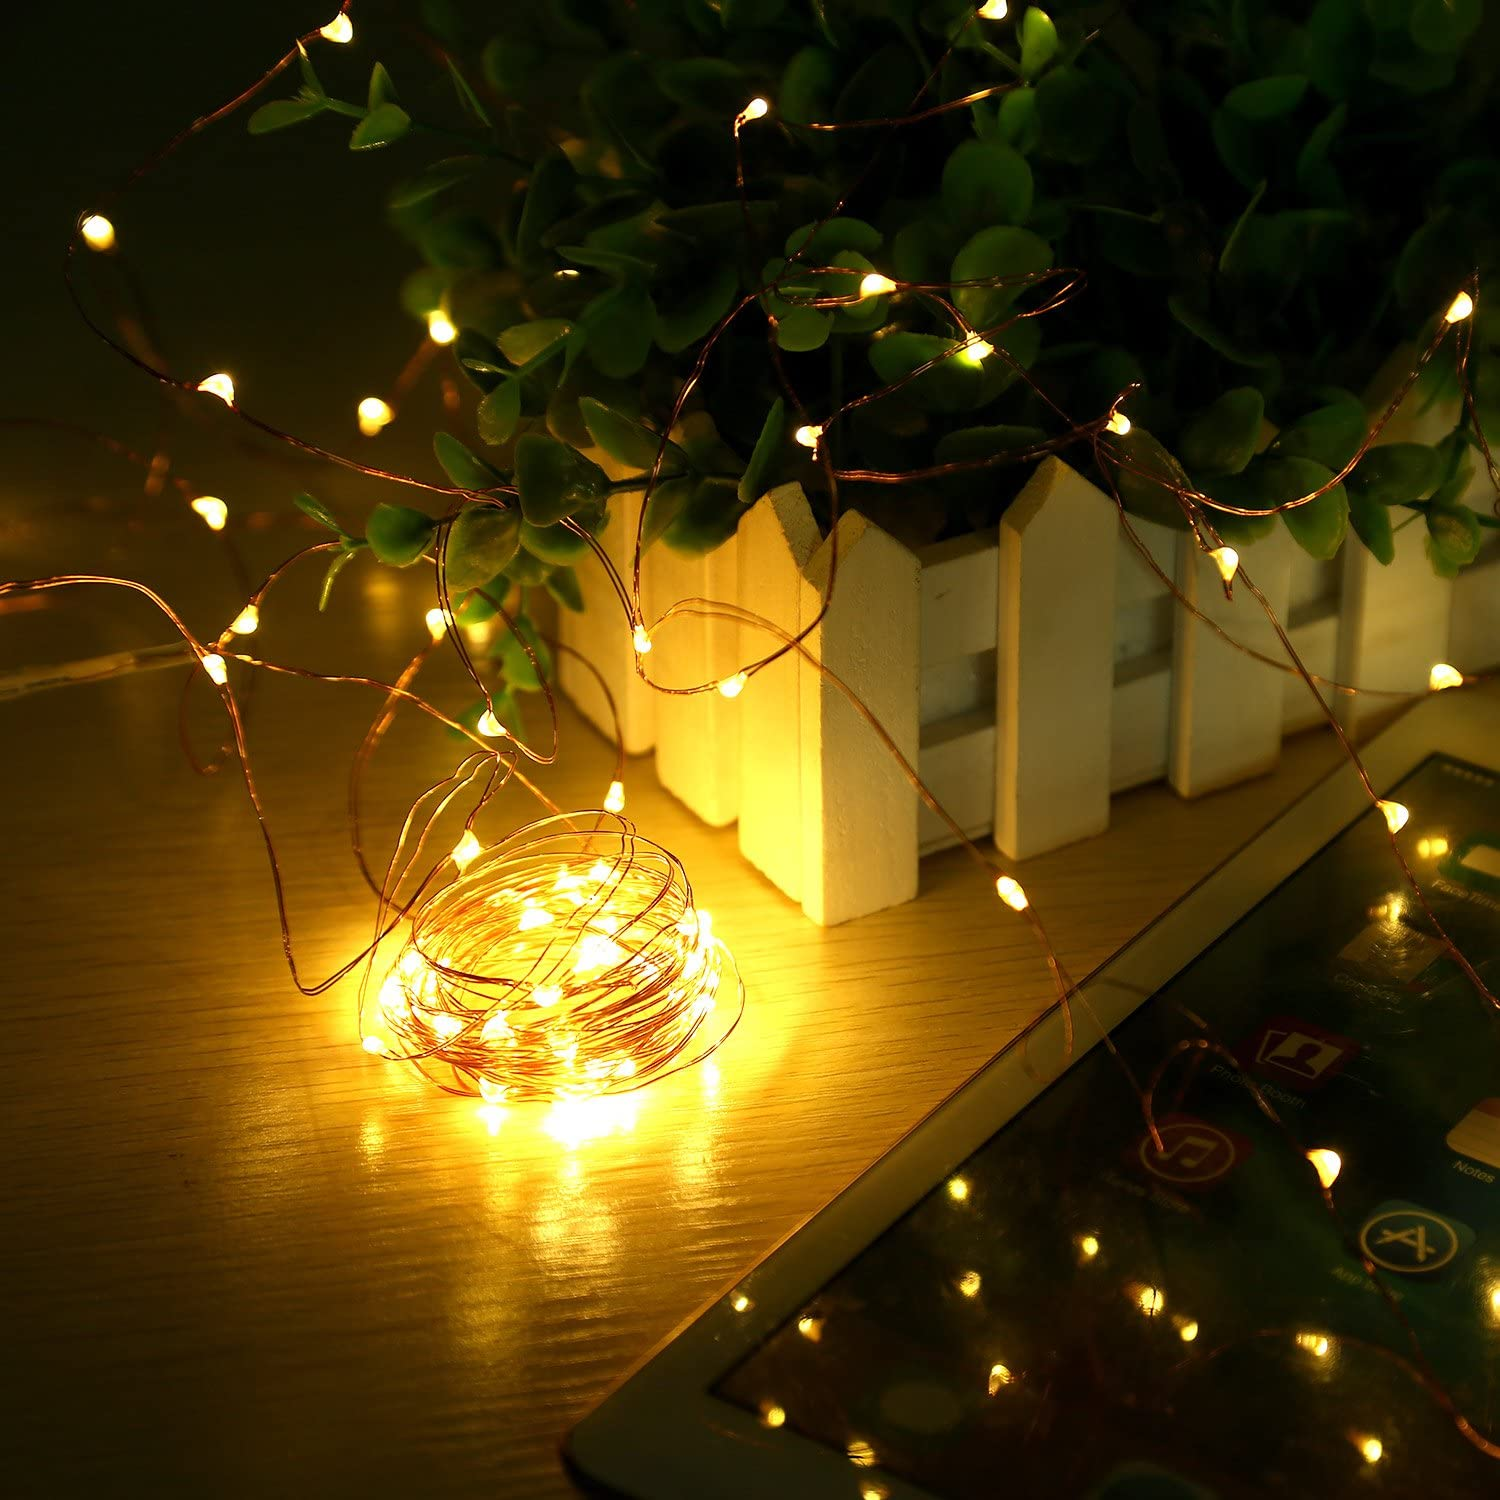 Gate 33ft 100LED Outdoor String Lights Warm White Wedding Home Garden WAAO Solar String Lights Waterproof Decorative String Lights for Patio Yard Christmas Party